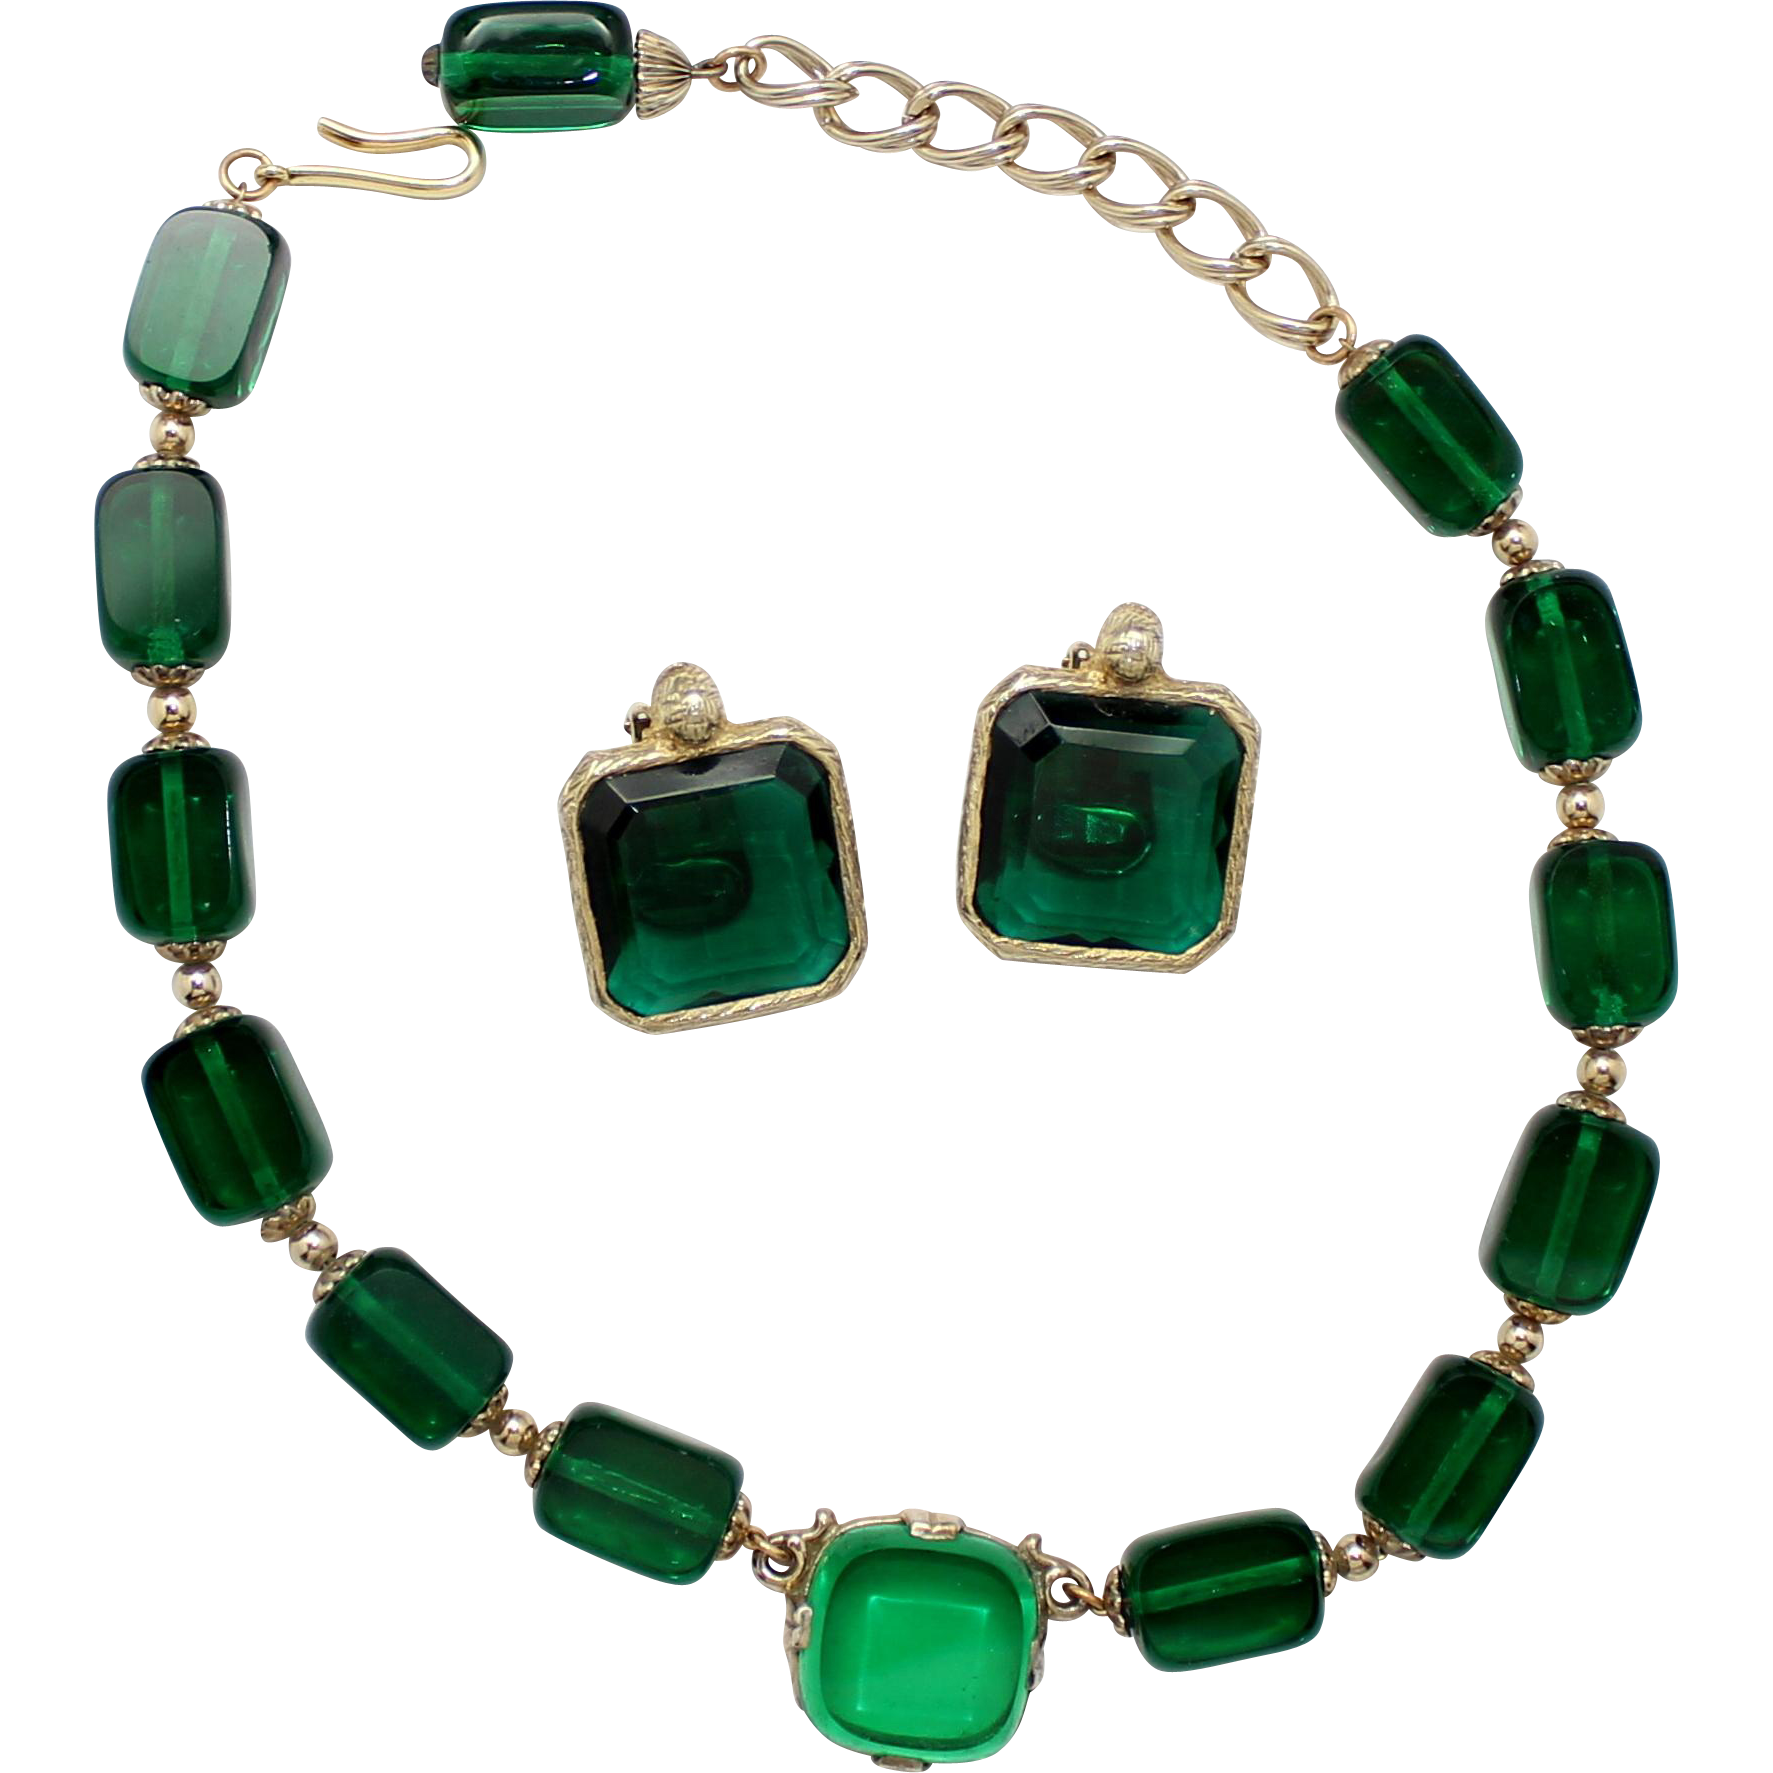 Vintage Kramer Deep Green Emerald Cut Bead Necklace and Earrings Demi Parure